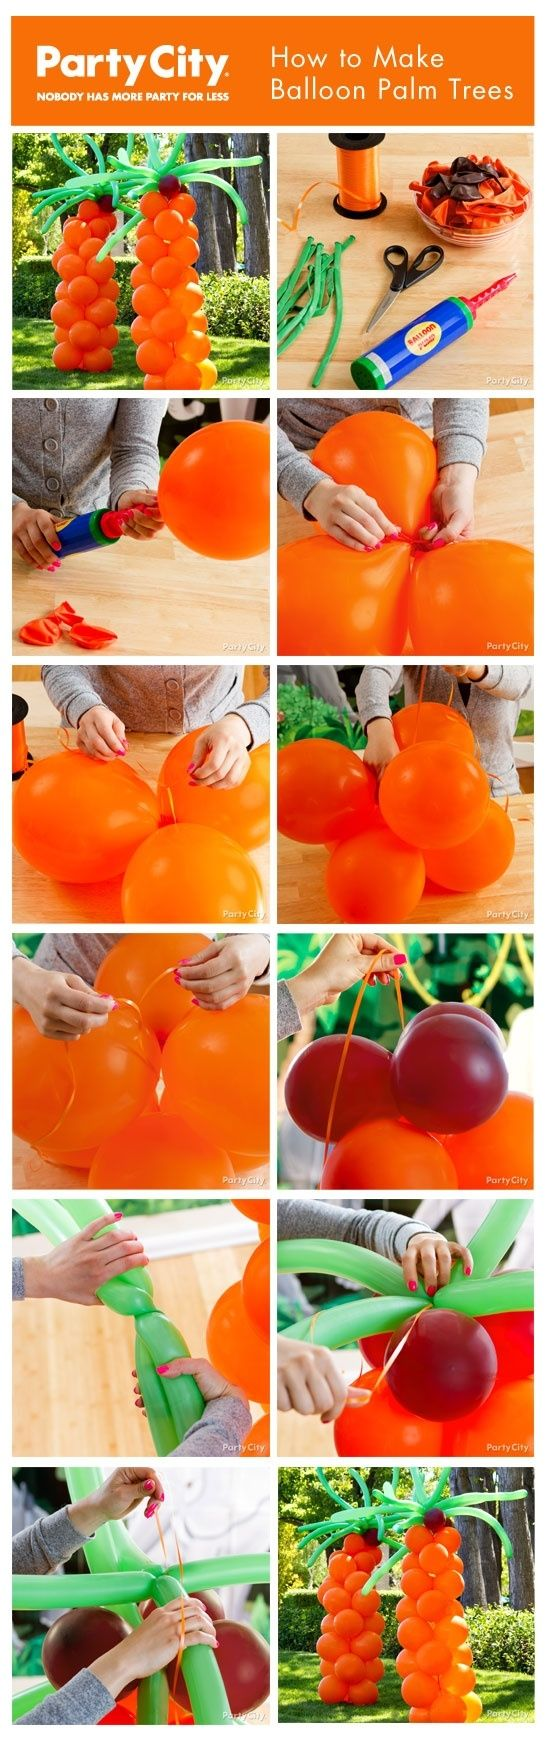 DIY Balloon Palm Trees Pictures, Photos, and Images for Facebook, Tumblr, Pinterest, and Twitter